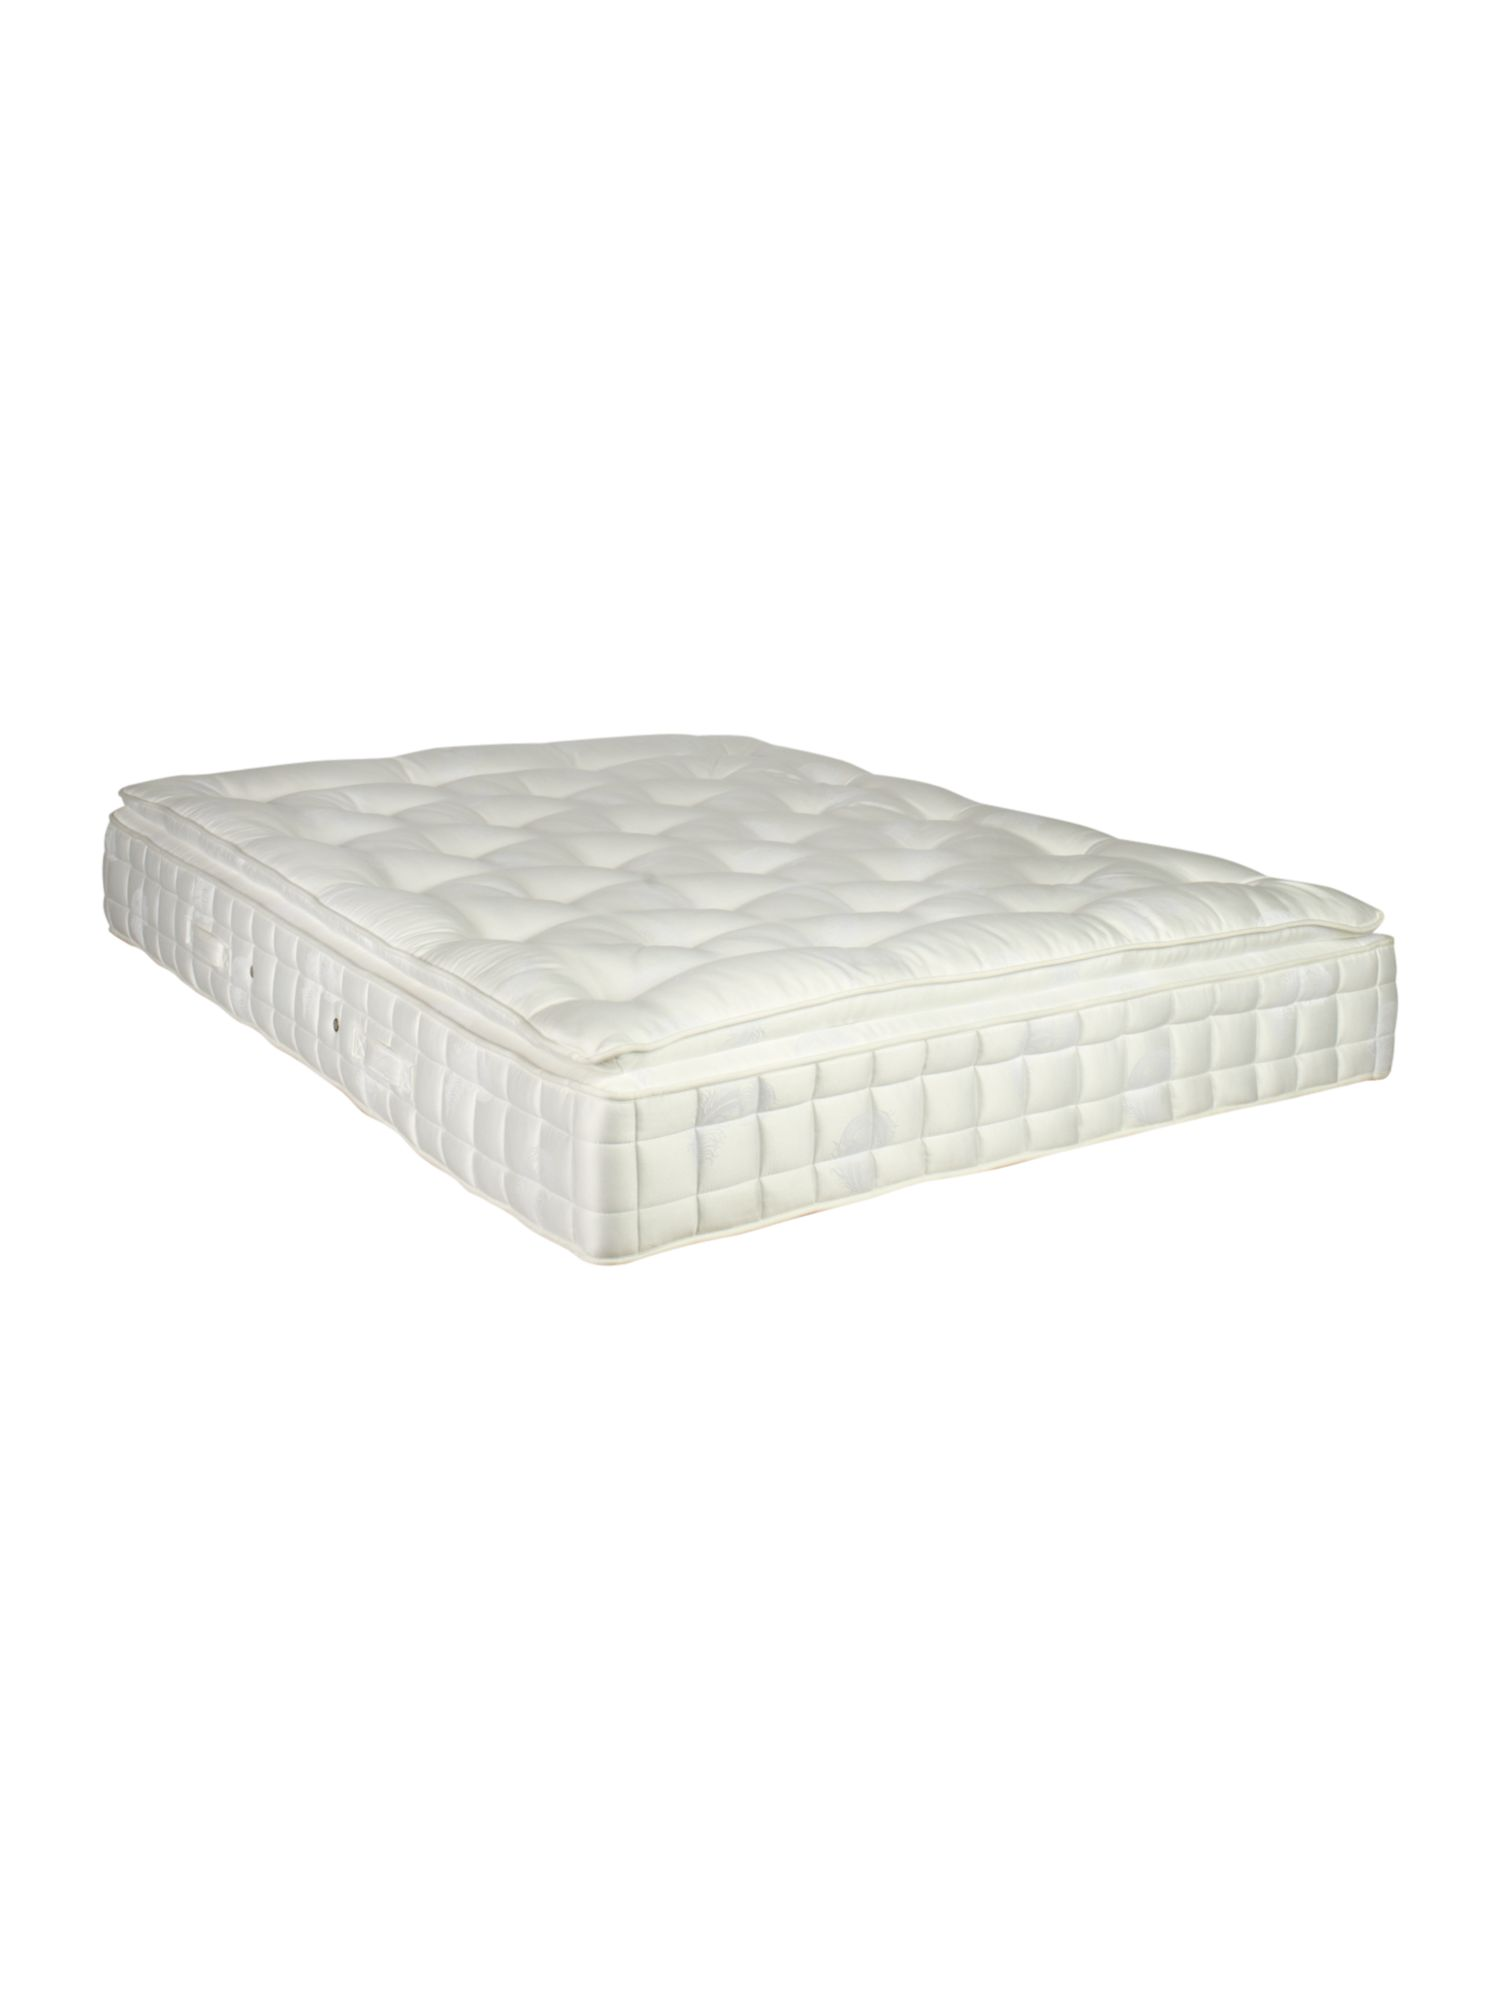 Tenor double mattress